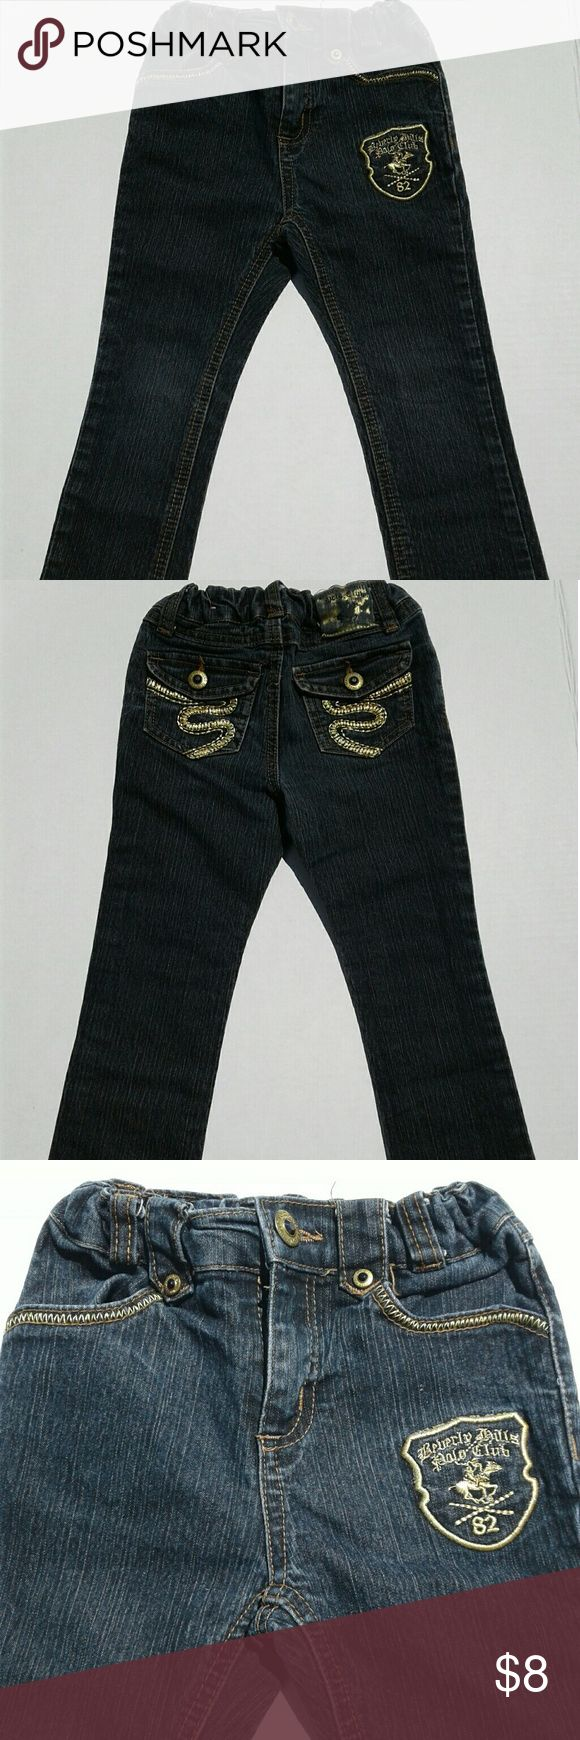 """Beverly Hills Polo Club Toddler Jeans 4T Here's a pair of toddler straight leg jeans from Beverly Hills Polo Club that are in good condition with gentle wear.  Features include adjustable elastic waist,  belt loops,  embroidered pockets.  Stated size is 4T. Measurements are  8""""/10"""" elastic waist,  7"""" rise,  16"""" inseam,  23"""" outseam,  4.5"""" cuffs.  All measurements are taken with the garment laying flat.  All garments have been washed and steamed and sealed in a bag. May be some wrinkling due…"""